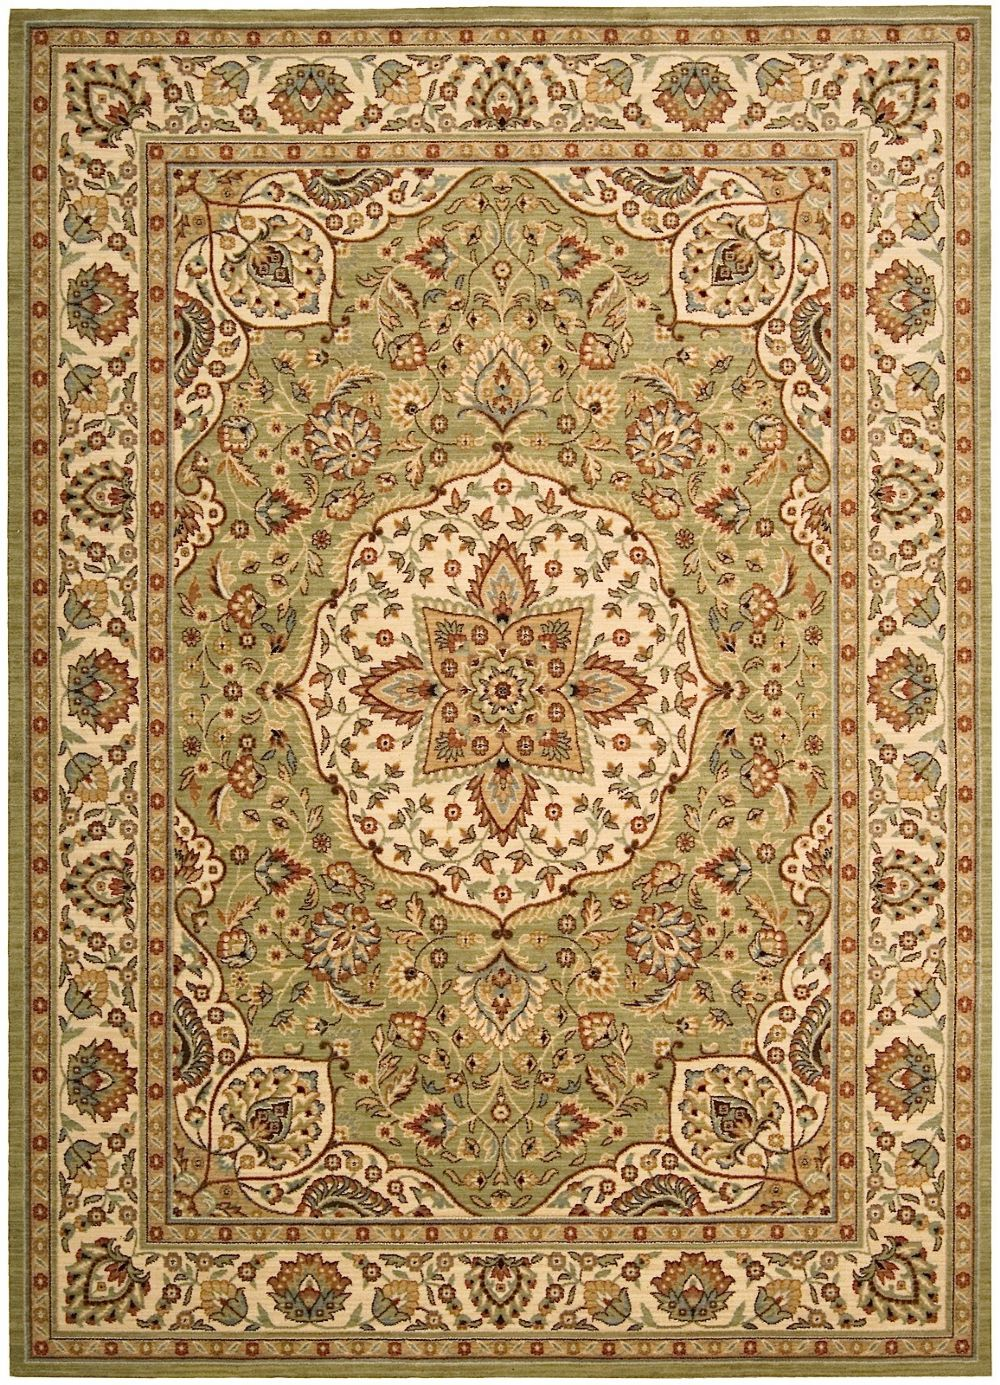 shaw arabesque european area rug collection